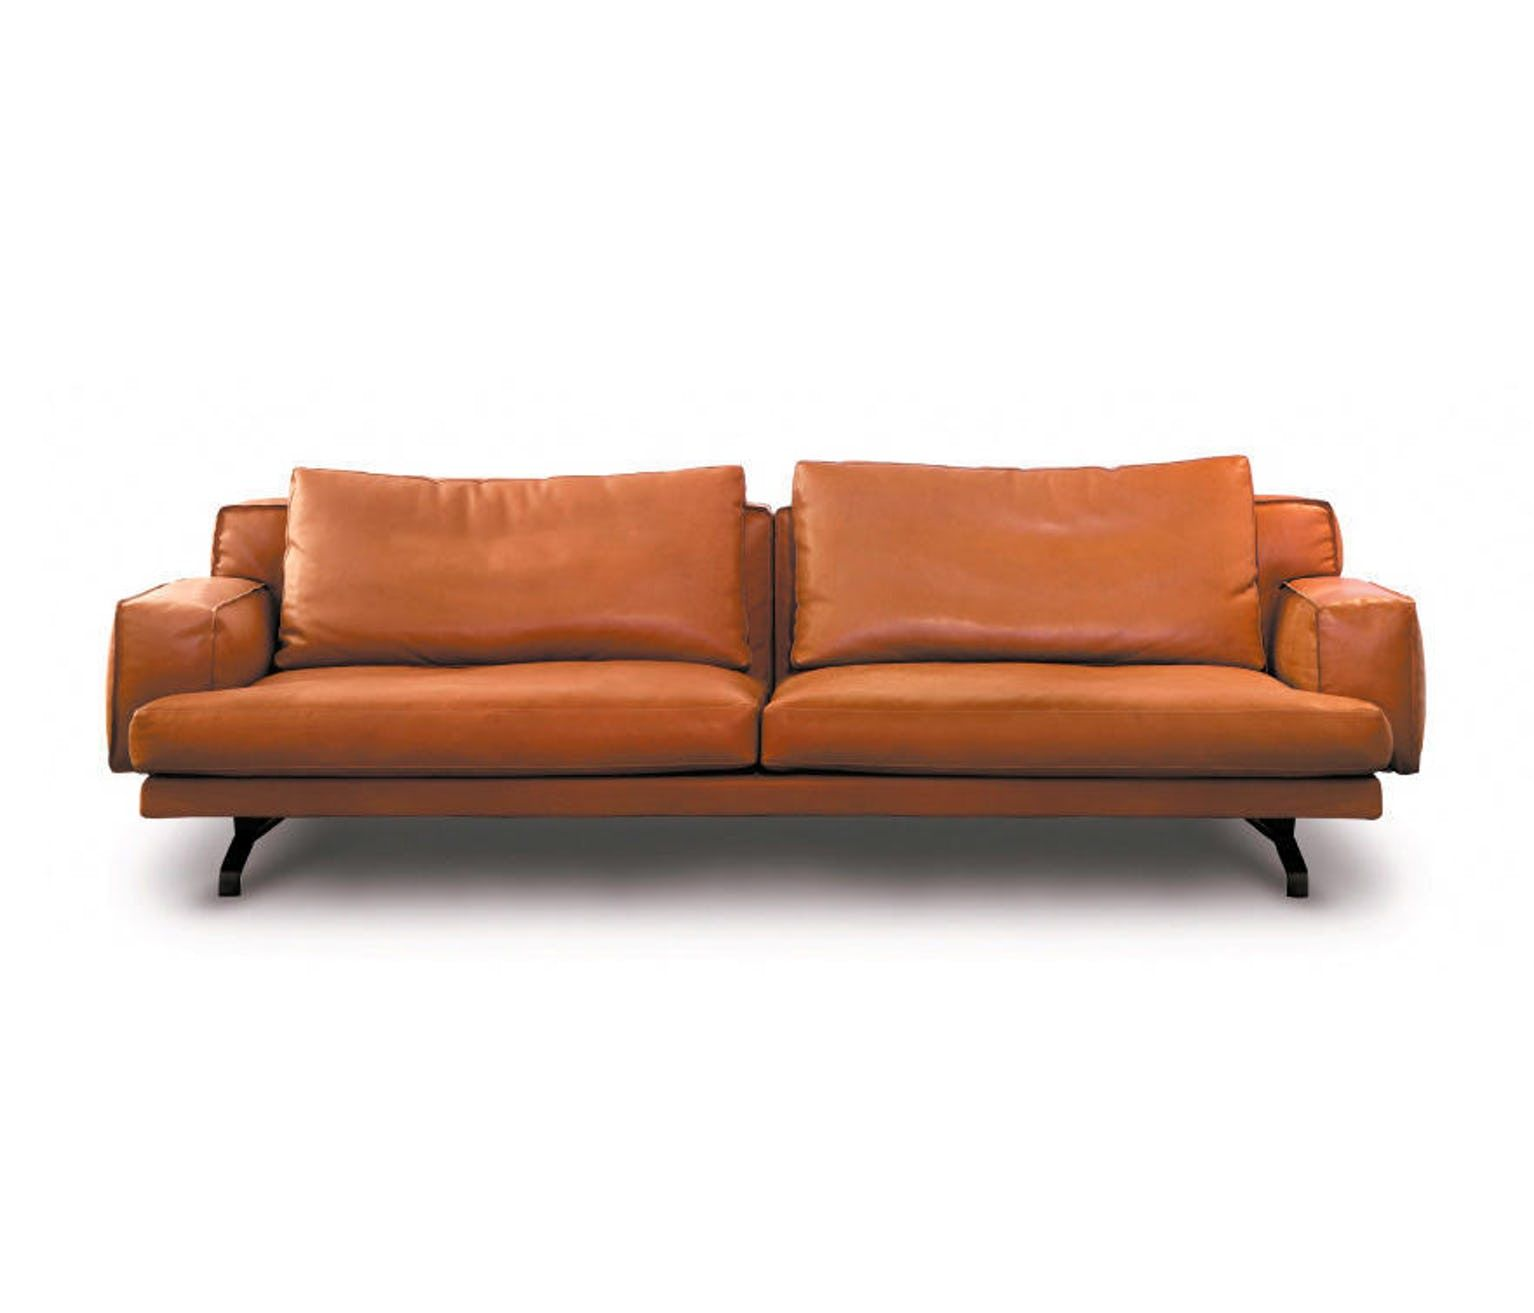 Sofa Super Günstig Mustique Sofa By Lema Now Available At Haute Living Lema